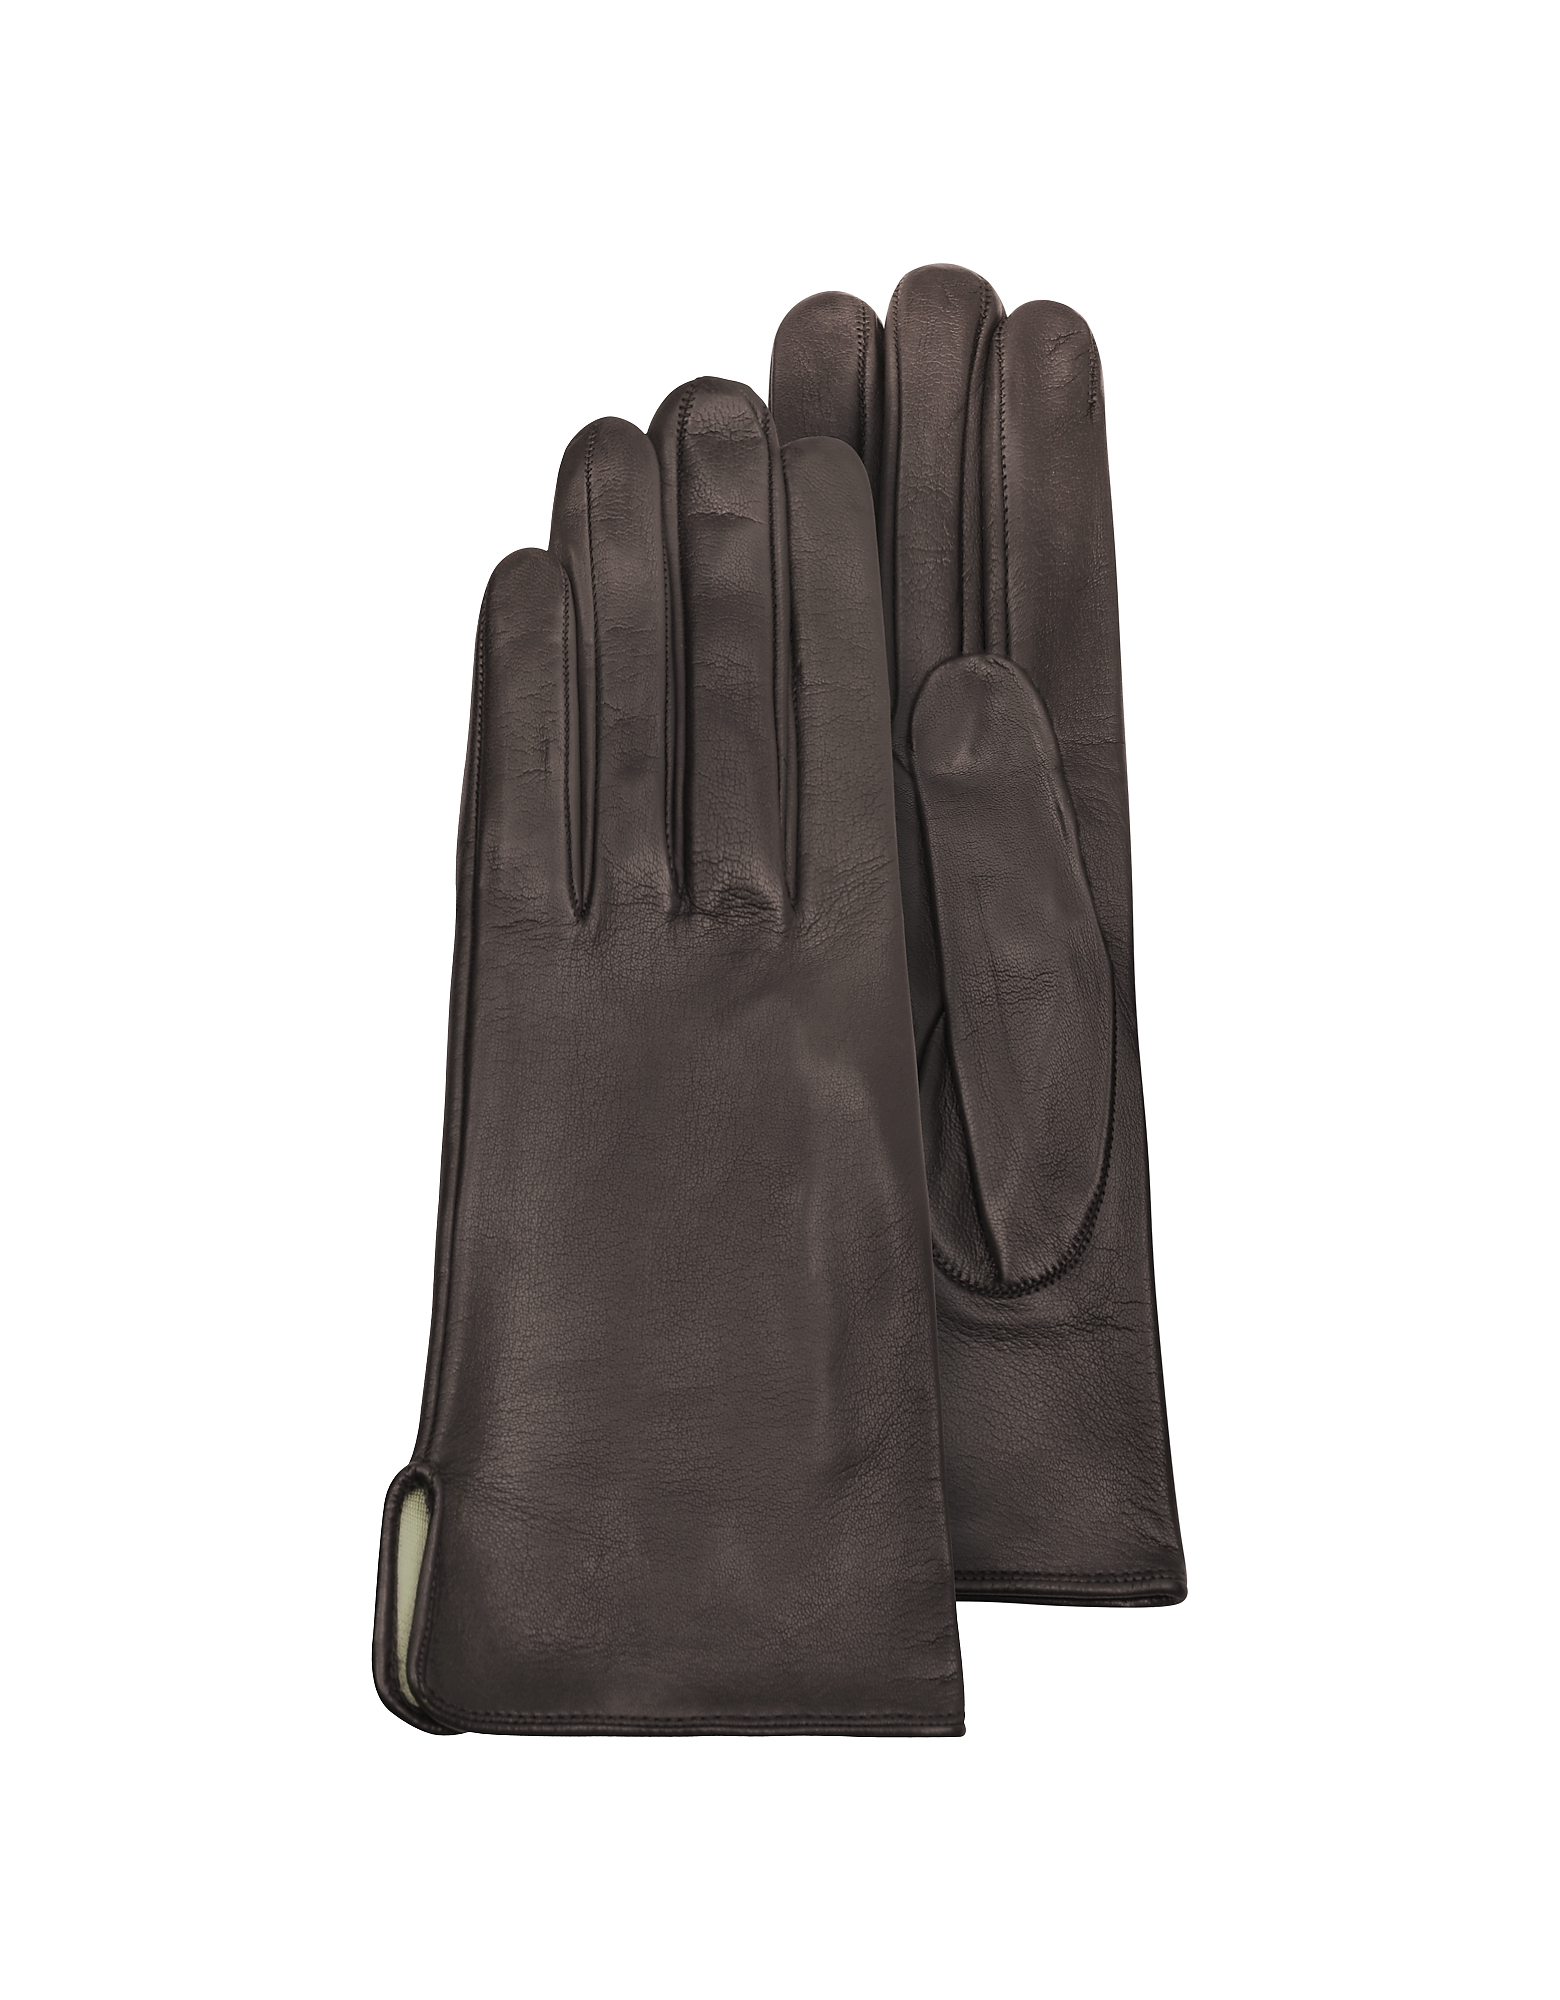 Forzieri Women's Gloves, Women's Brown Calf Leather Gloves w/ Silk Lining